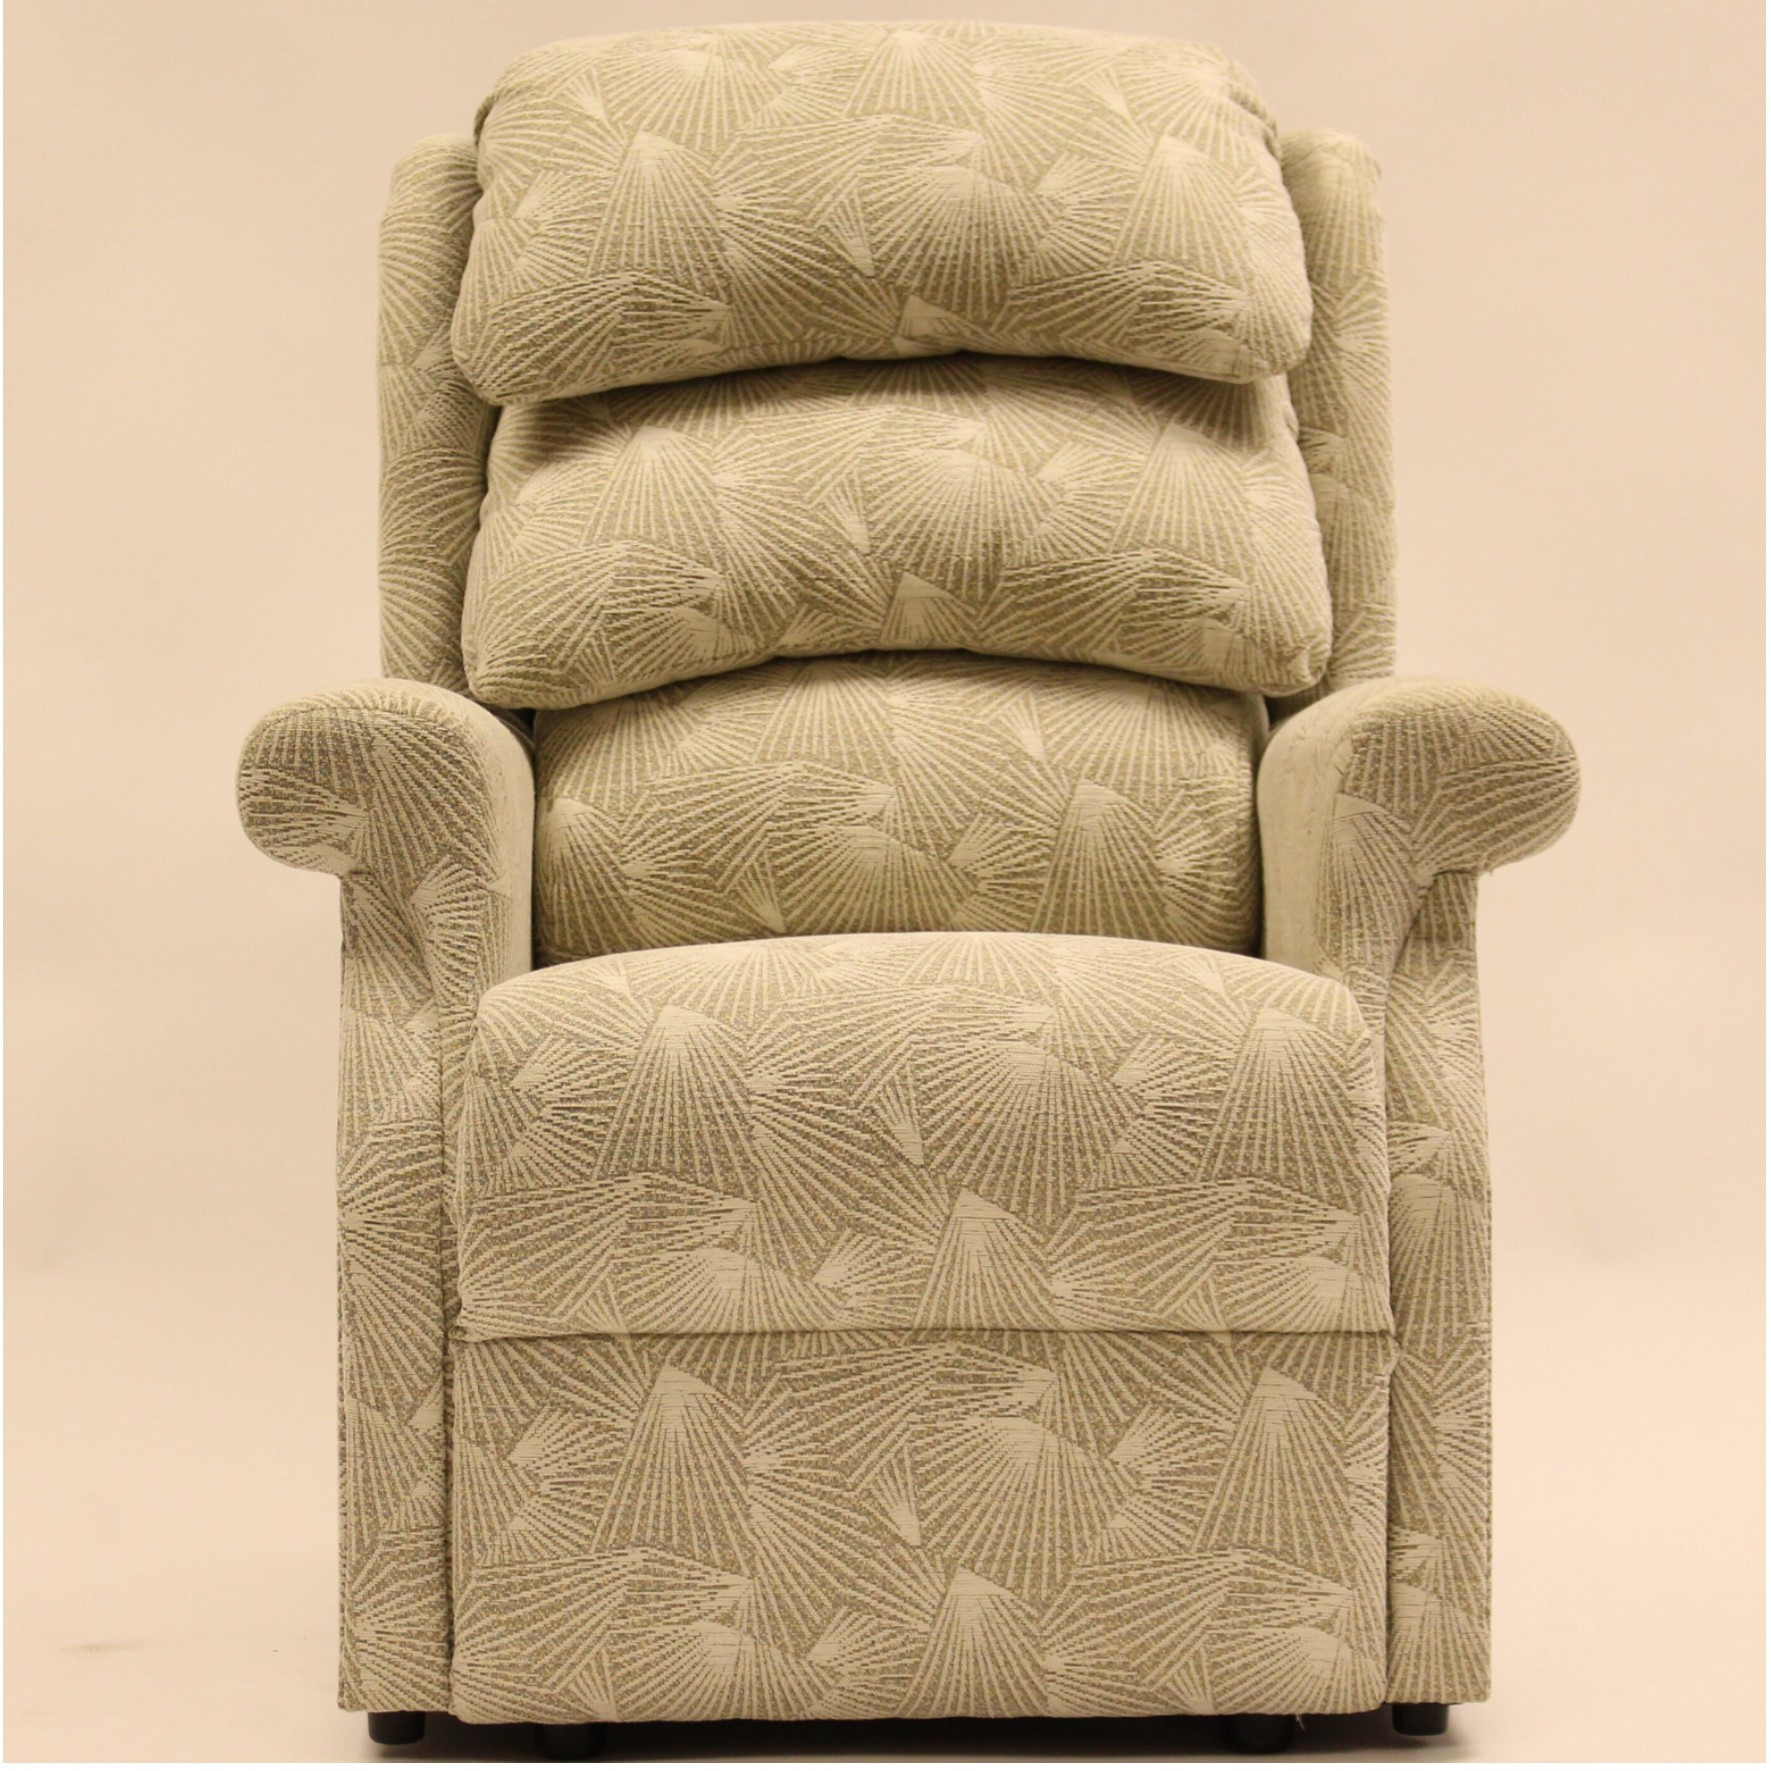 Kent Upholstered Chair